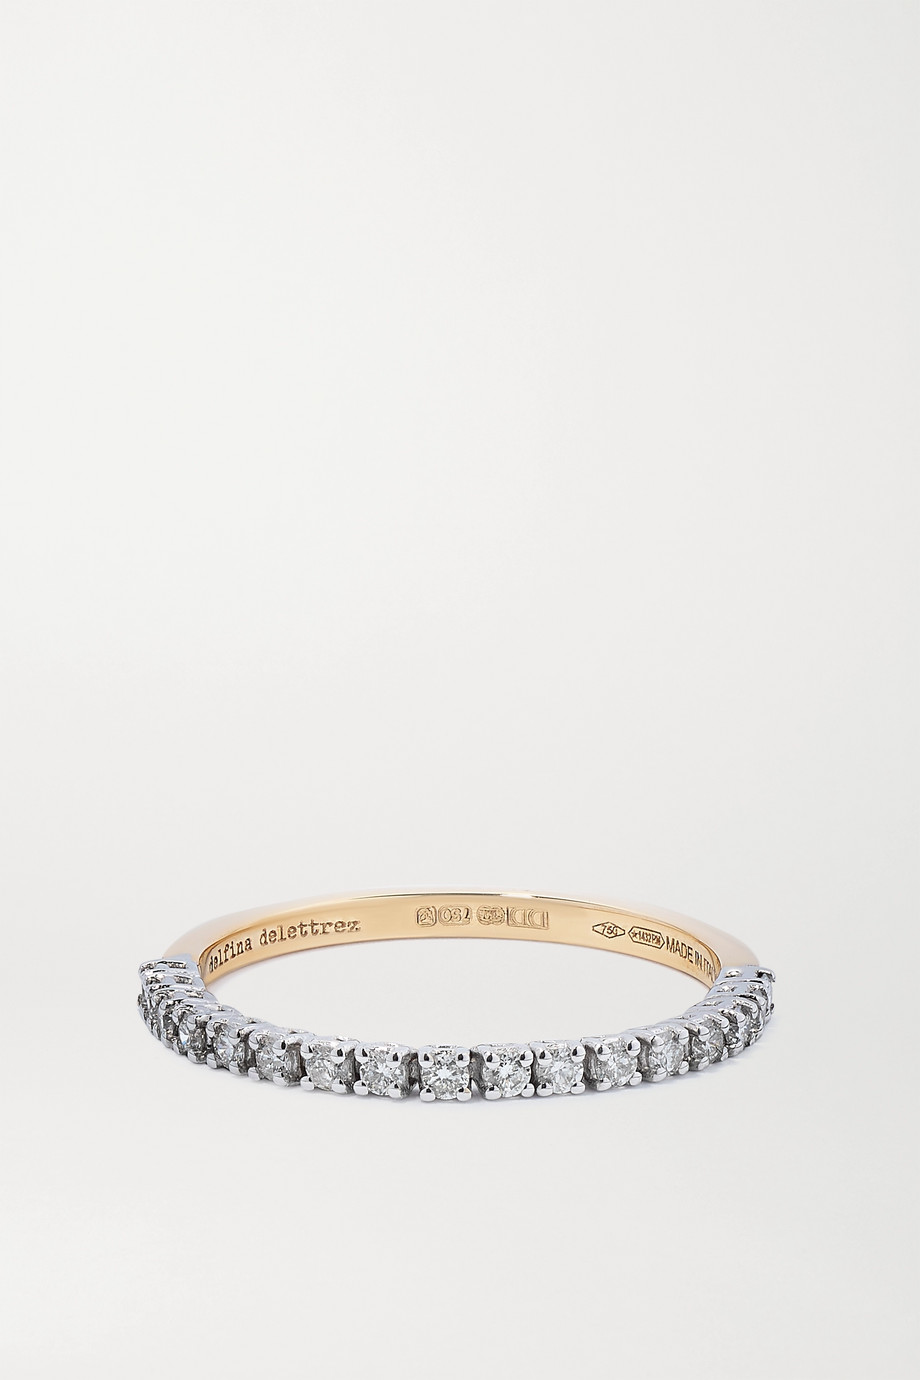 DELFINA DELETTREZ 18-karat yellow and white gold diamond ring